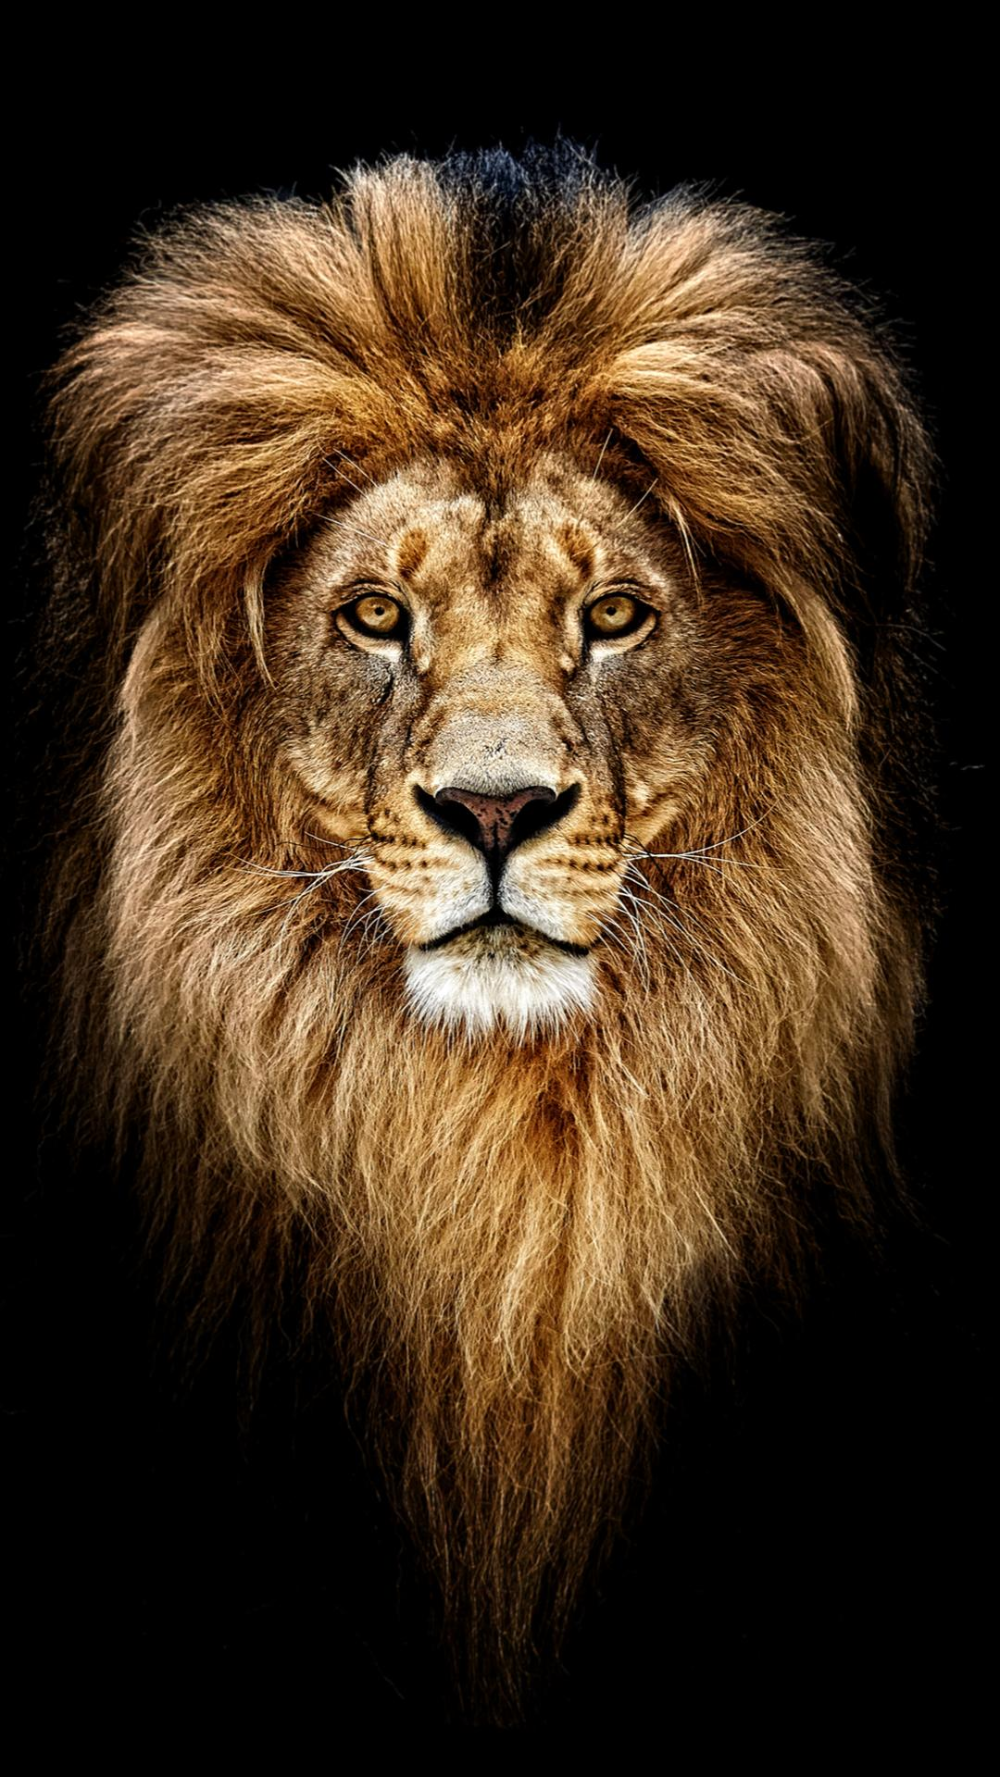 Lion Painting By Number kit